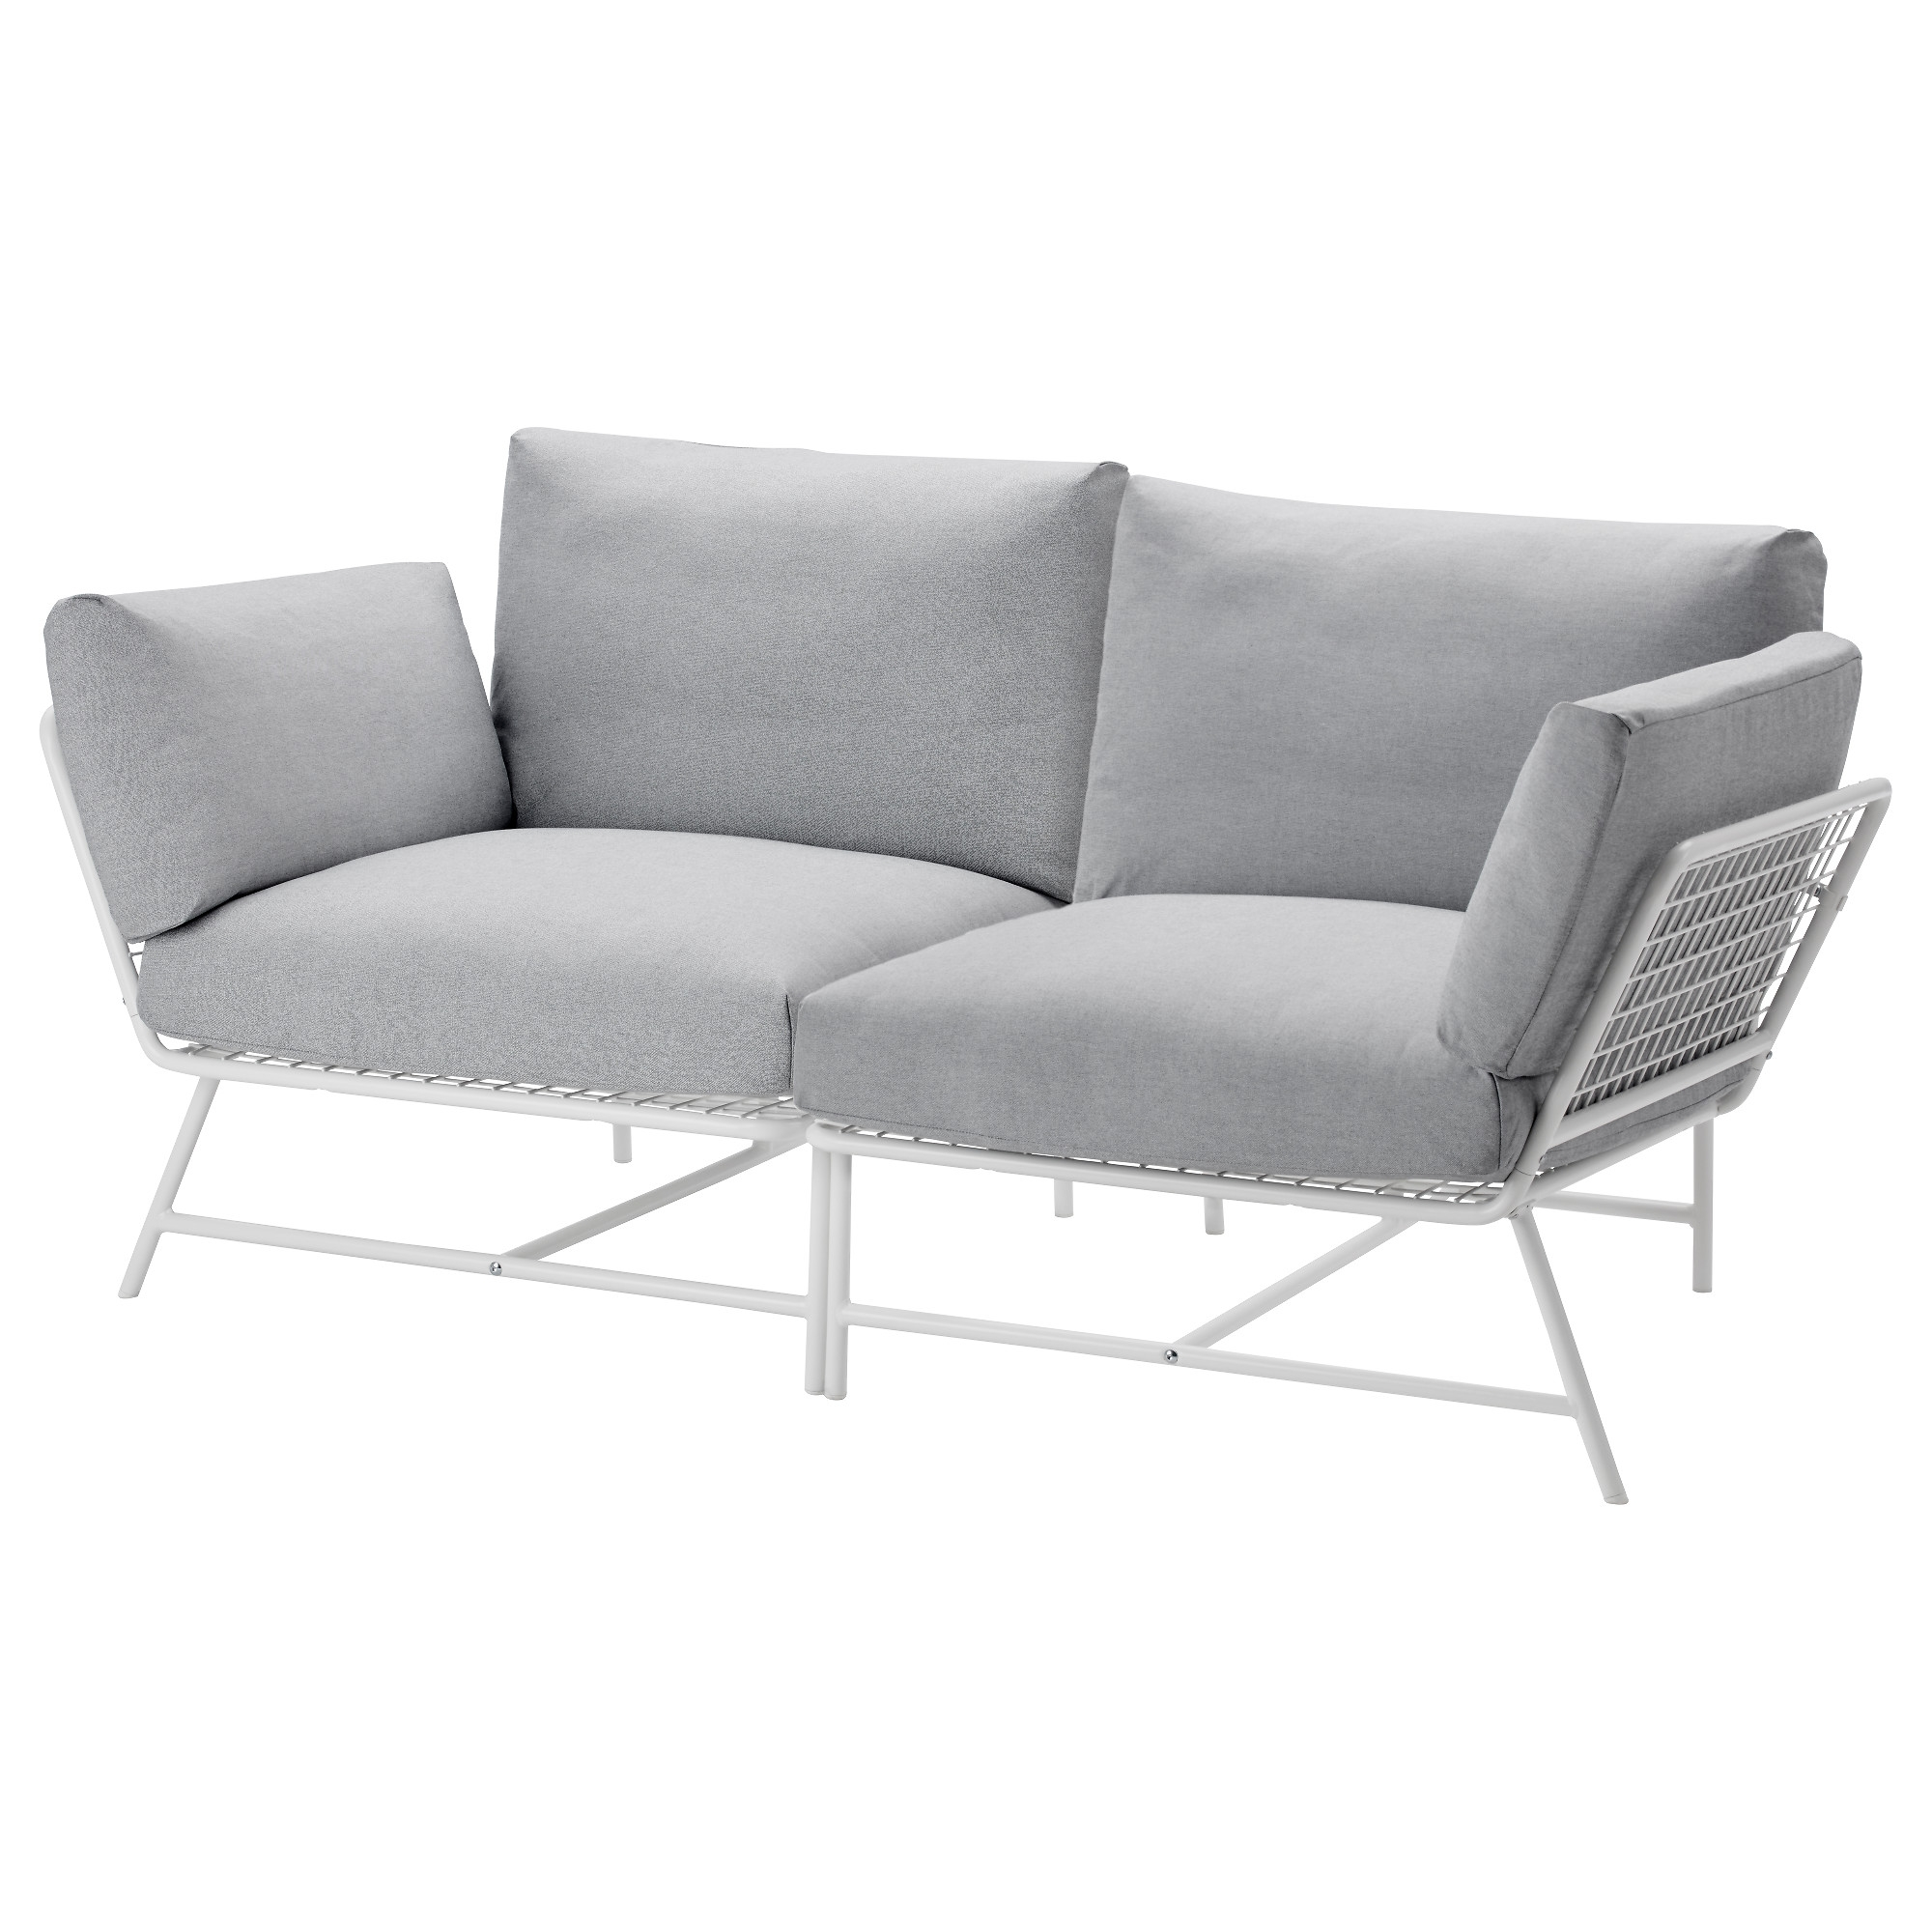 Sofas Armchairs Ikea Within Sofa Chairs Ikea (View 1 of 15)